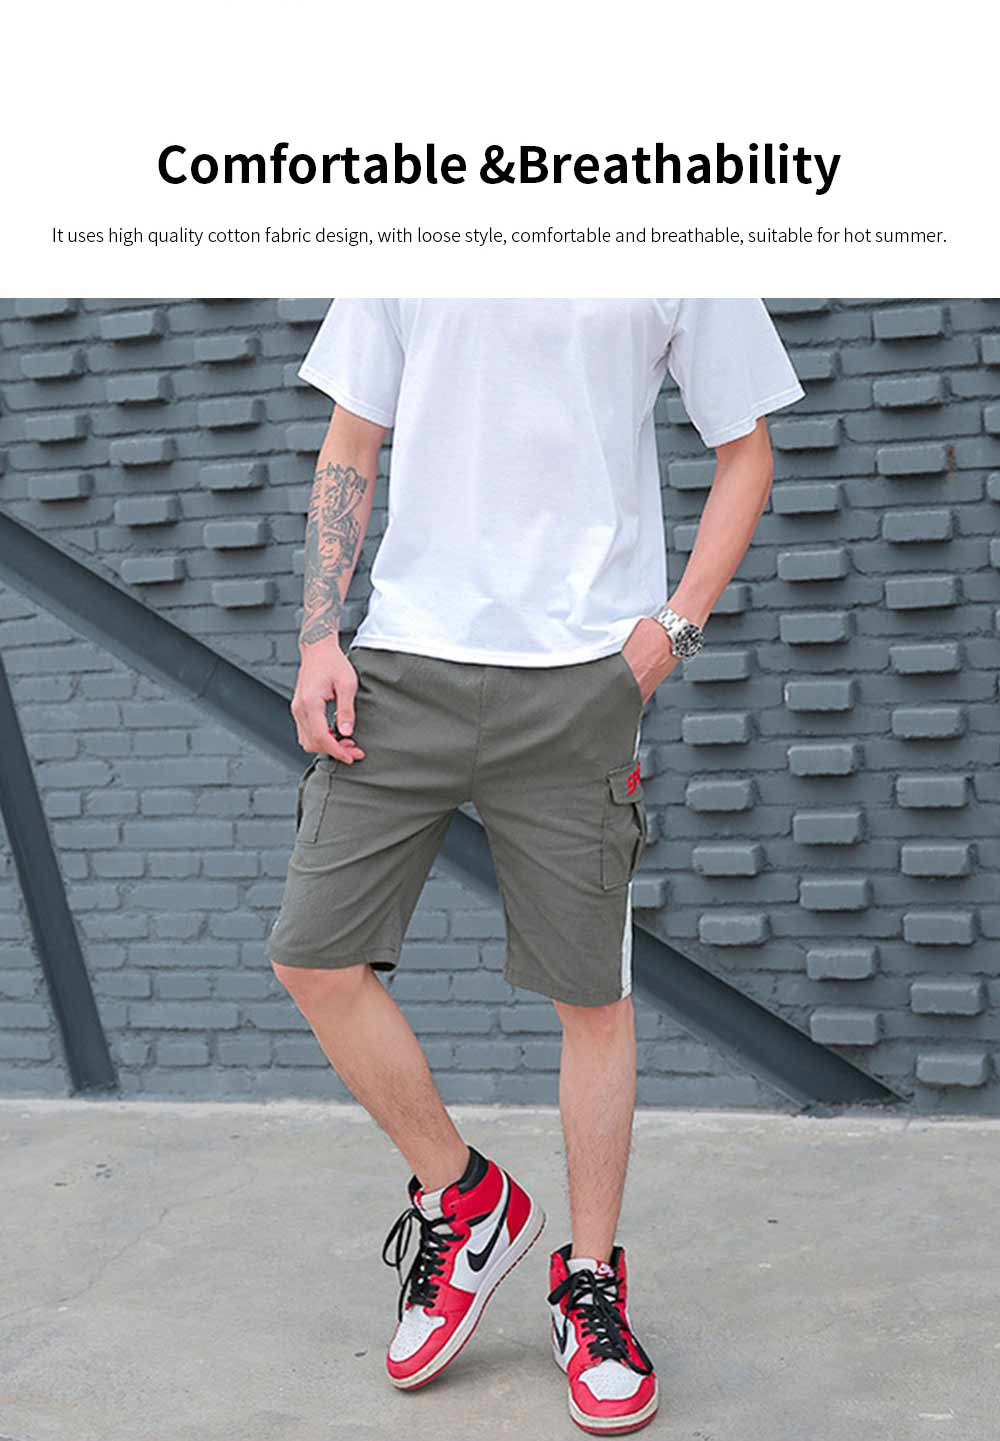 Men's Casual Overalls Shorts Students' Five-Point Shorts New Fashion Pocket Pants For Summer 3